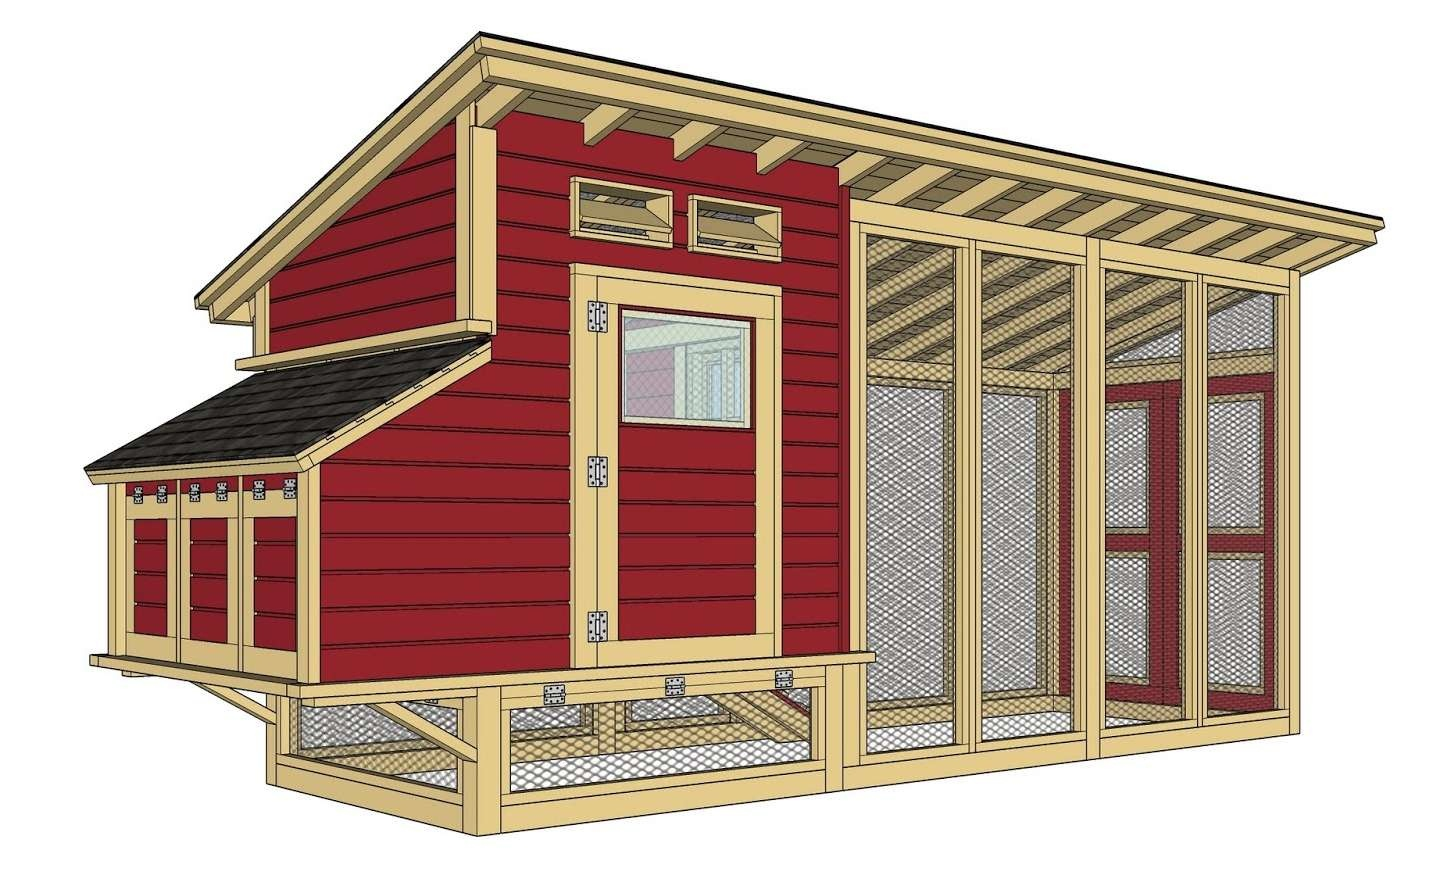 13 Free Chicken Coop Plans You Can Diy This Weekend - Free Printable Chicken Coop Plans